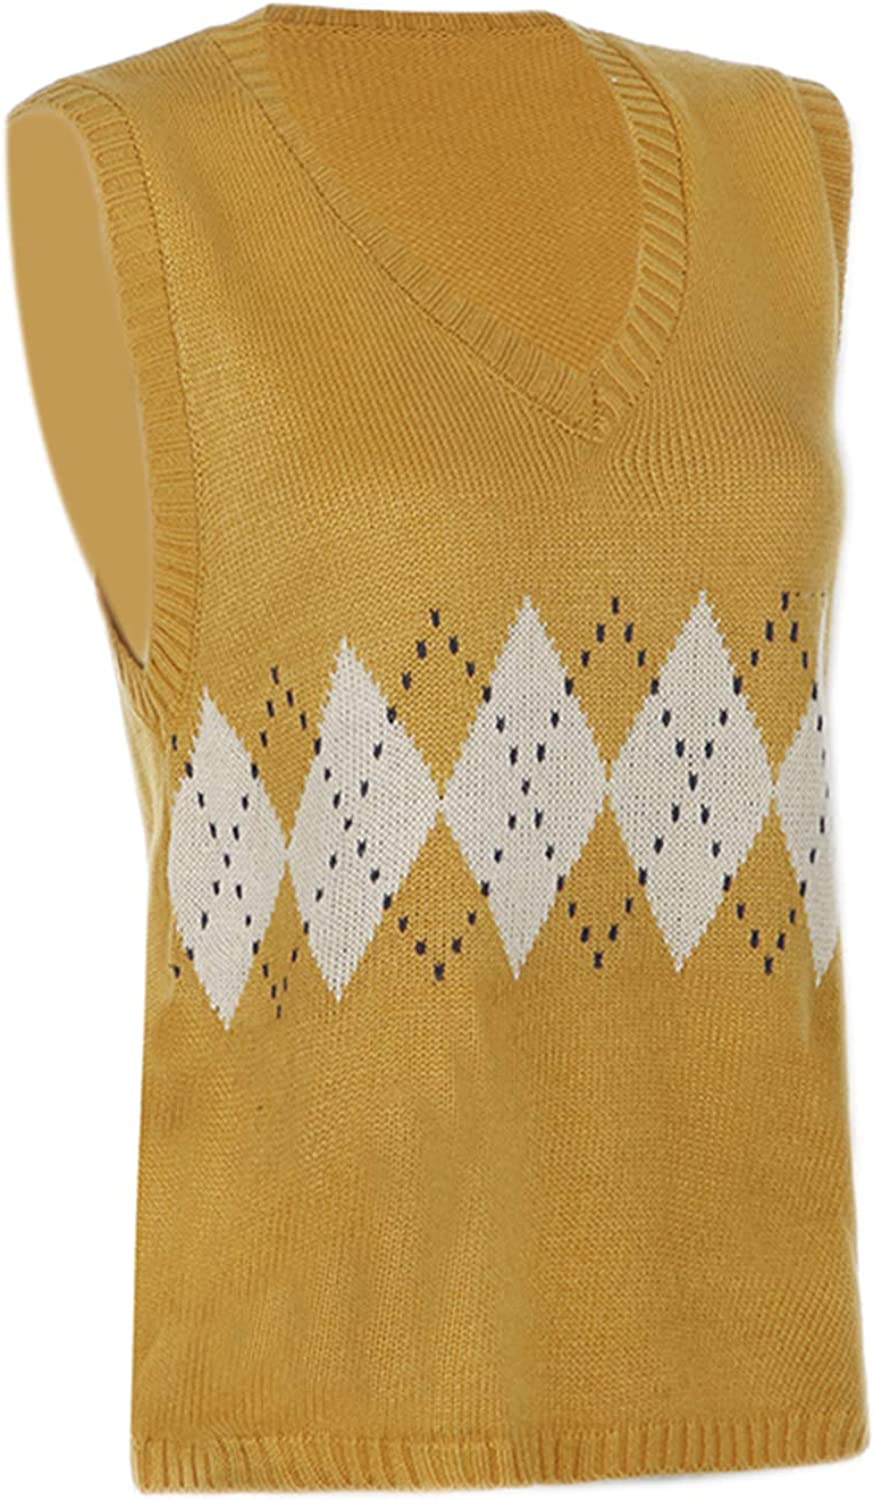 Sweater Knitted Vest Women Sleeveless Jumpers Pullover Argyle Preppy Style V Neck Plaid Sweater Y2K Vintage Tops